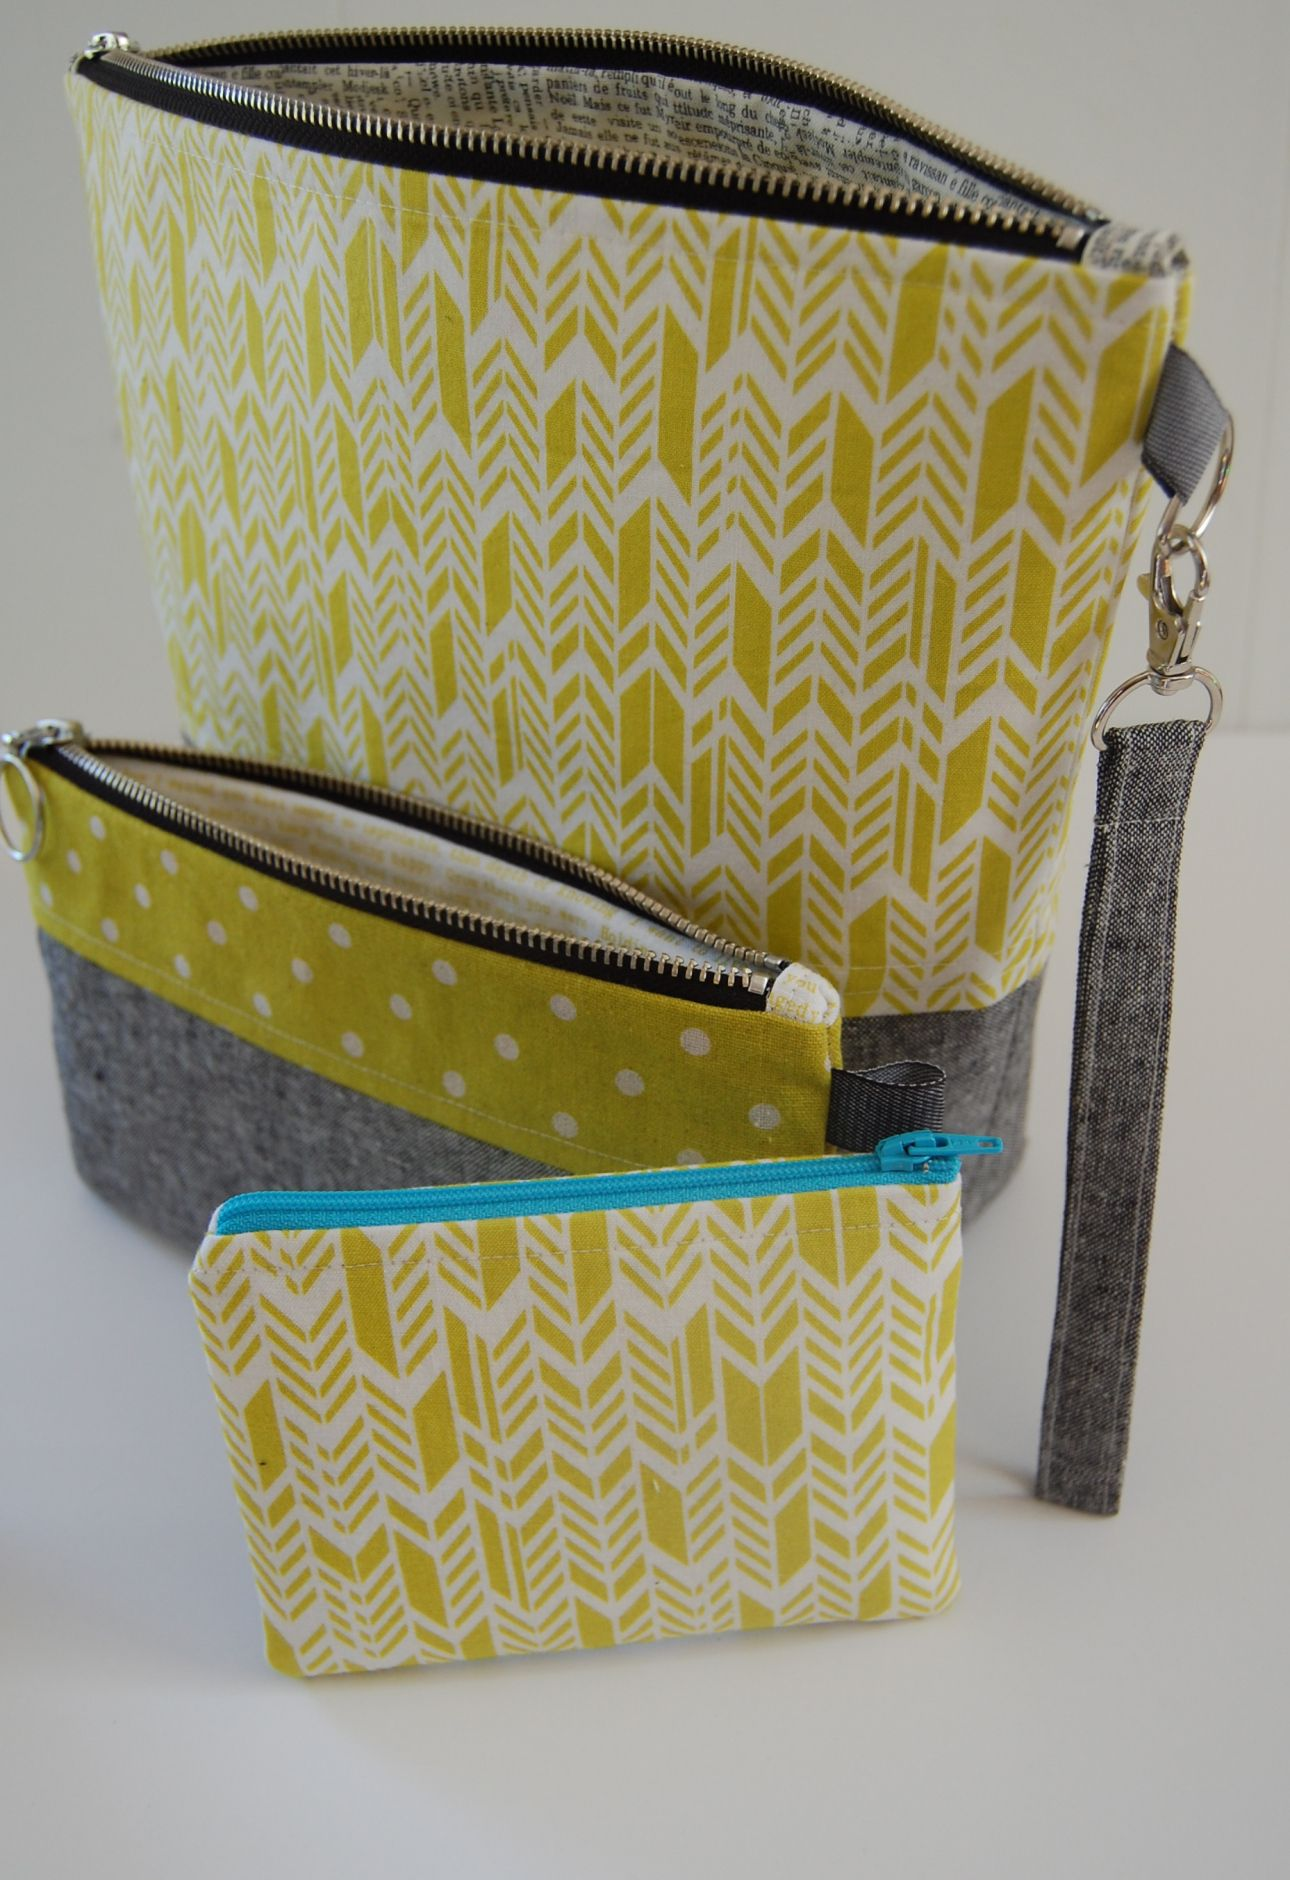 Introducing My New Project/Stash Bags… Diy bags purses